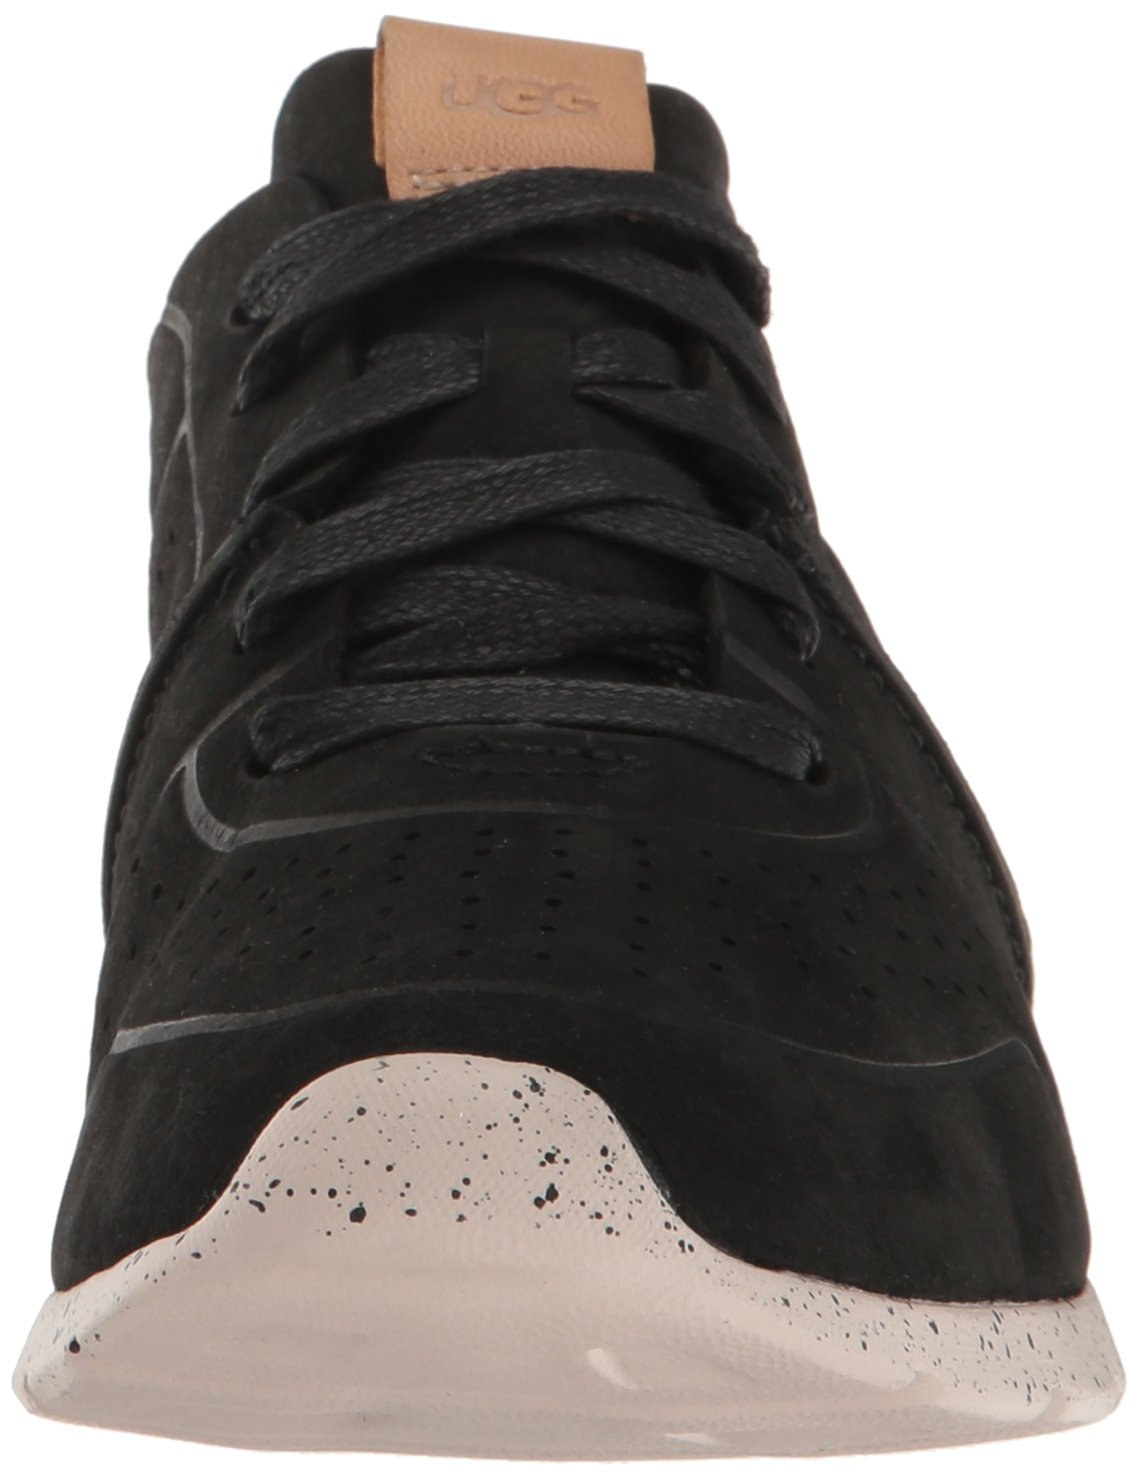 UGG Women's Tye Fashion Sneaker, Black, 8.5 US/8.5 B US by UGG (Image #4)